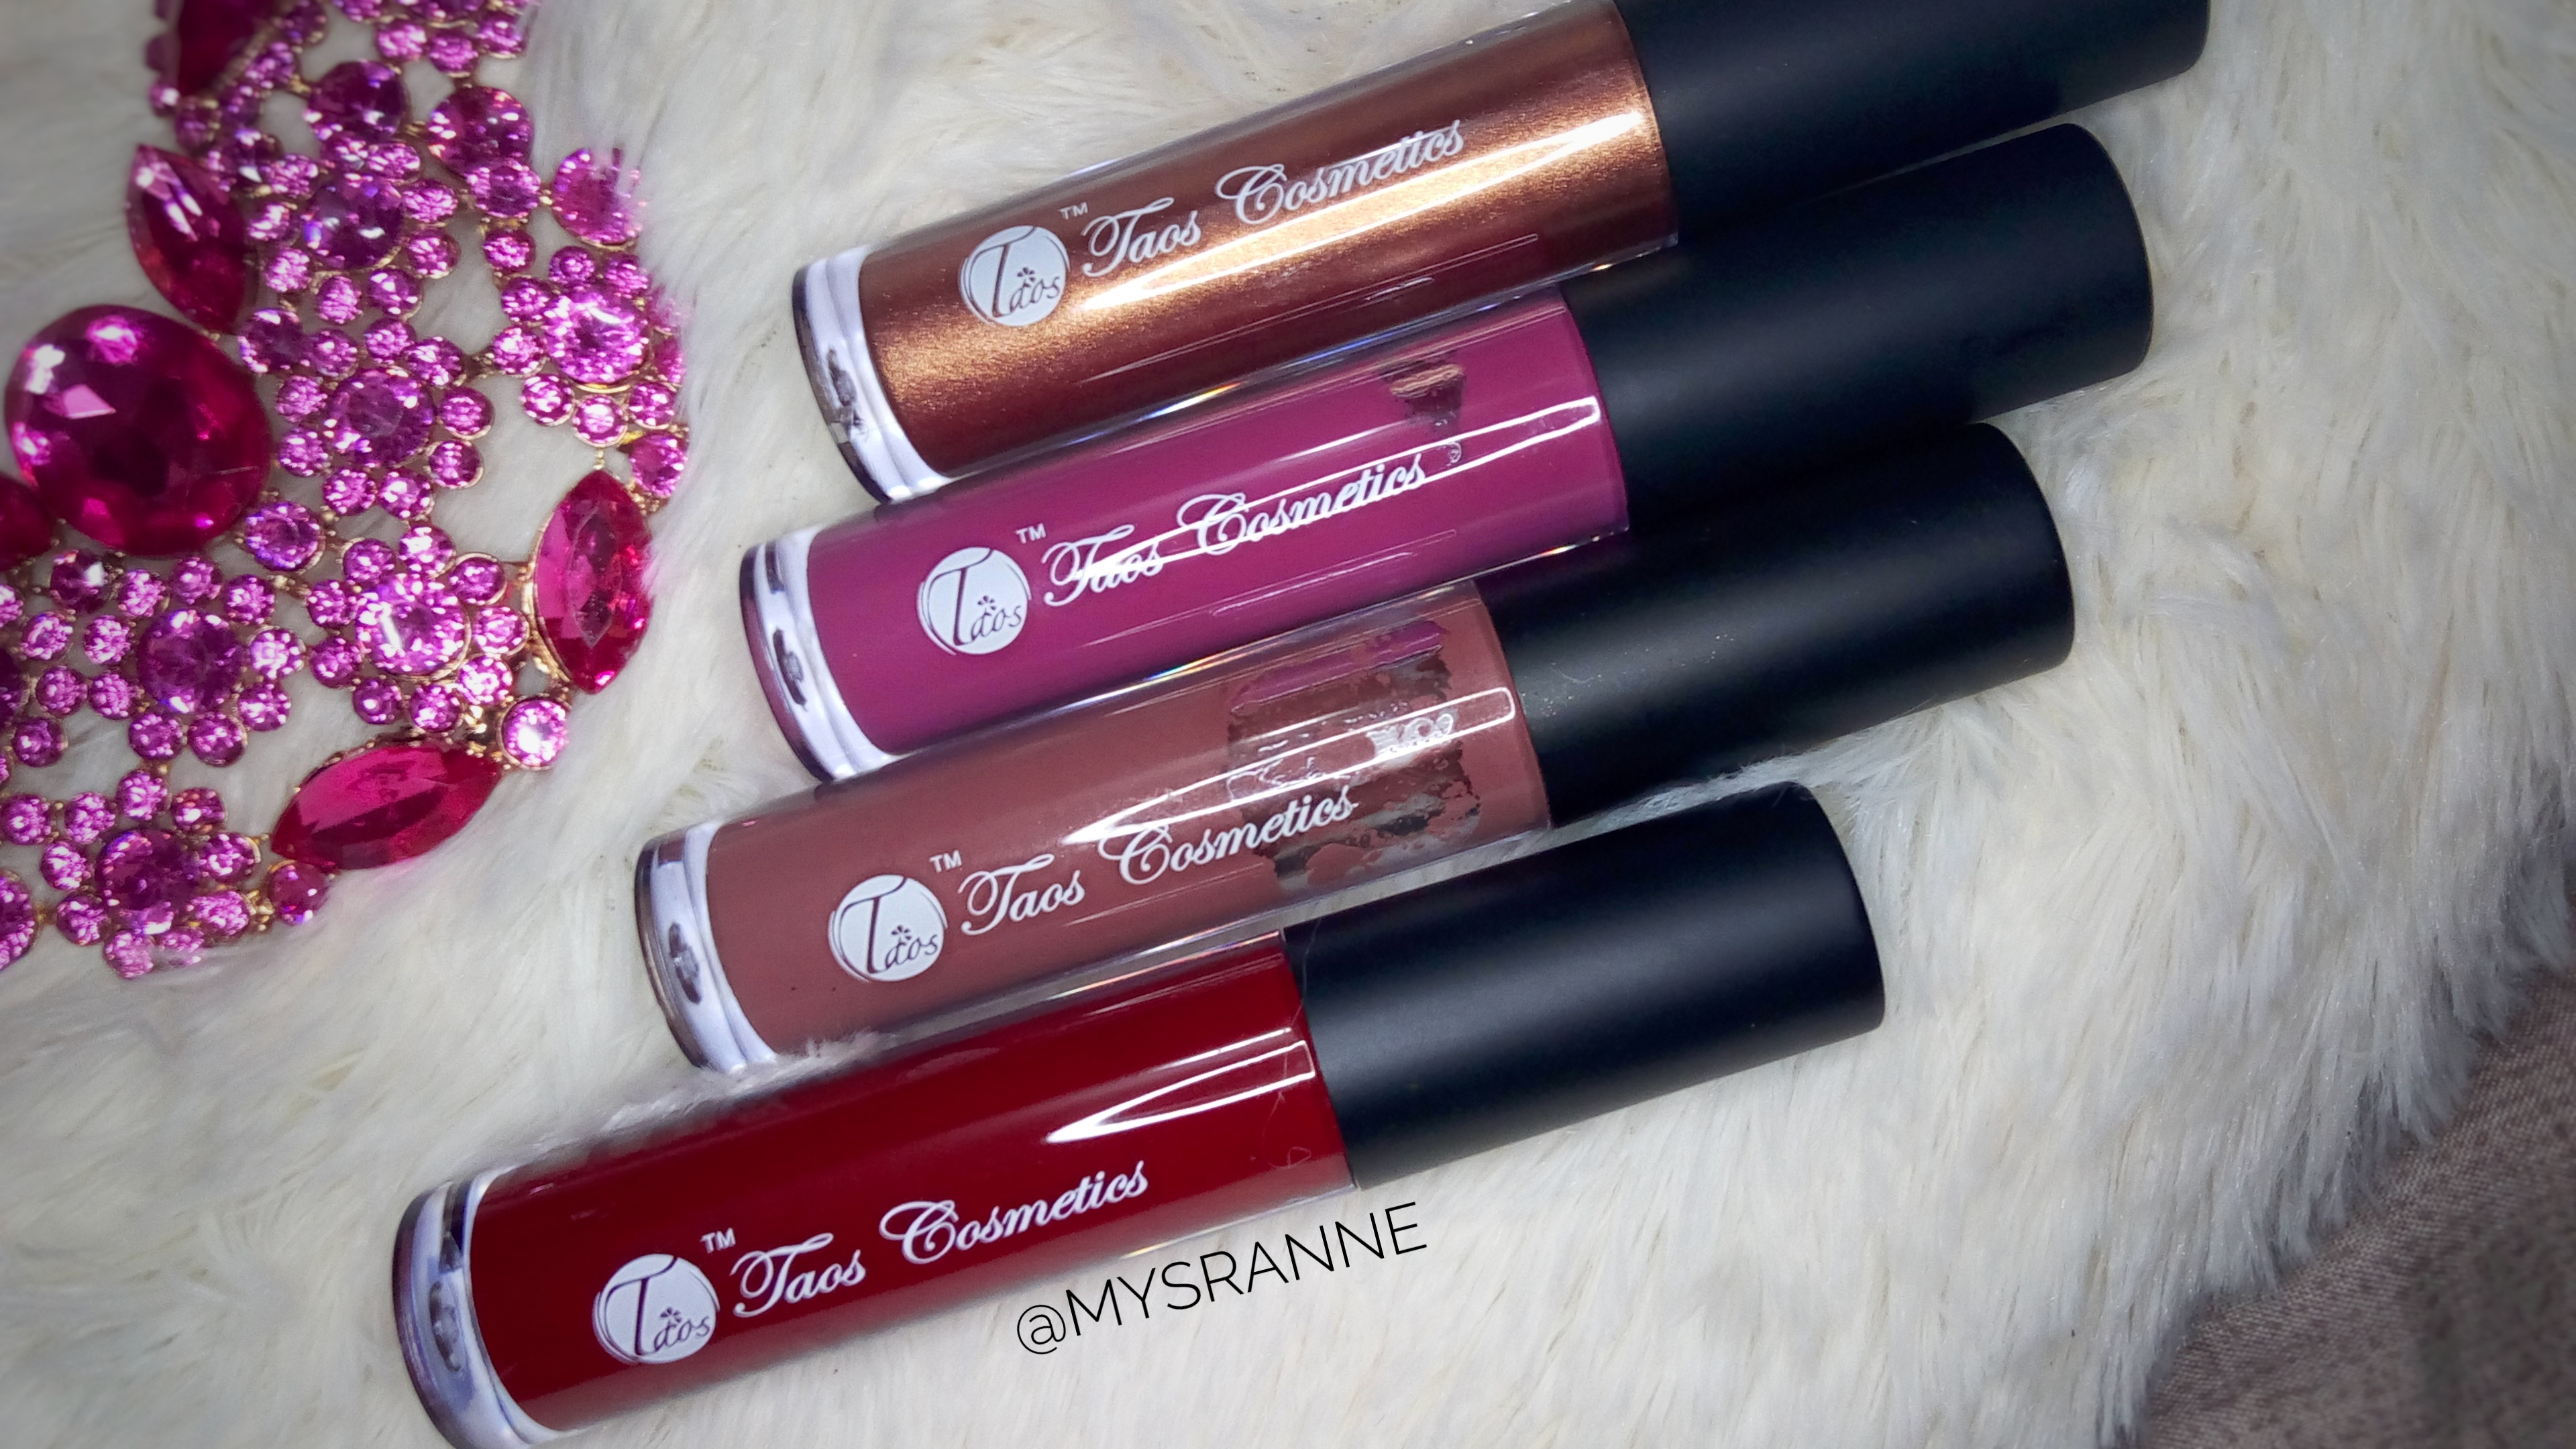 TAOS COSMETICS LIQUID GLASS (Review & Swatches)